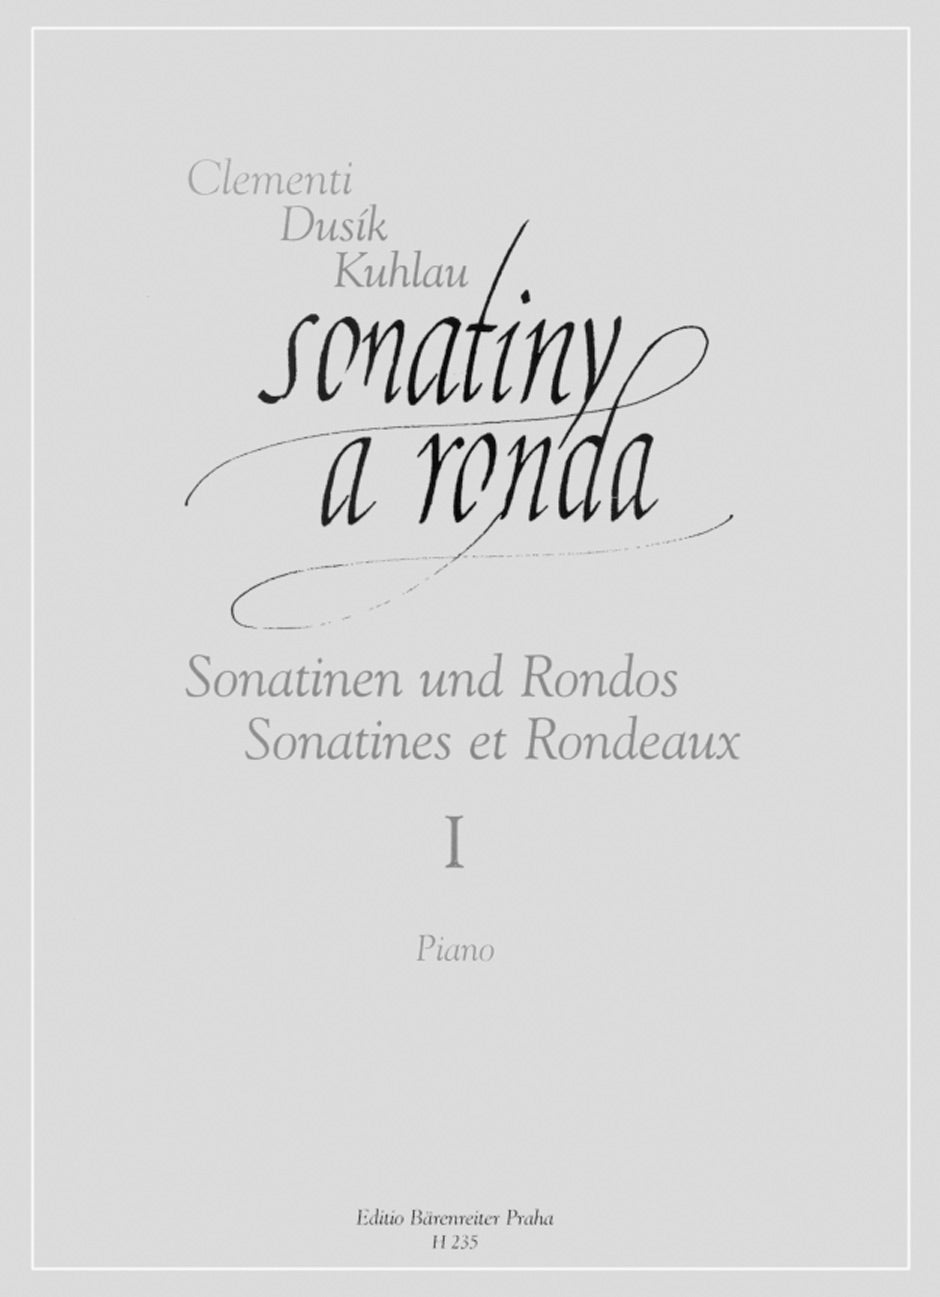 Sonatinas and Rondos by Clementi, Dusík and Kuhlau